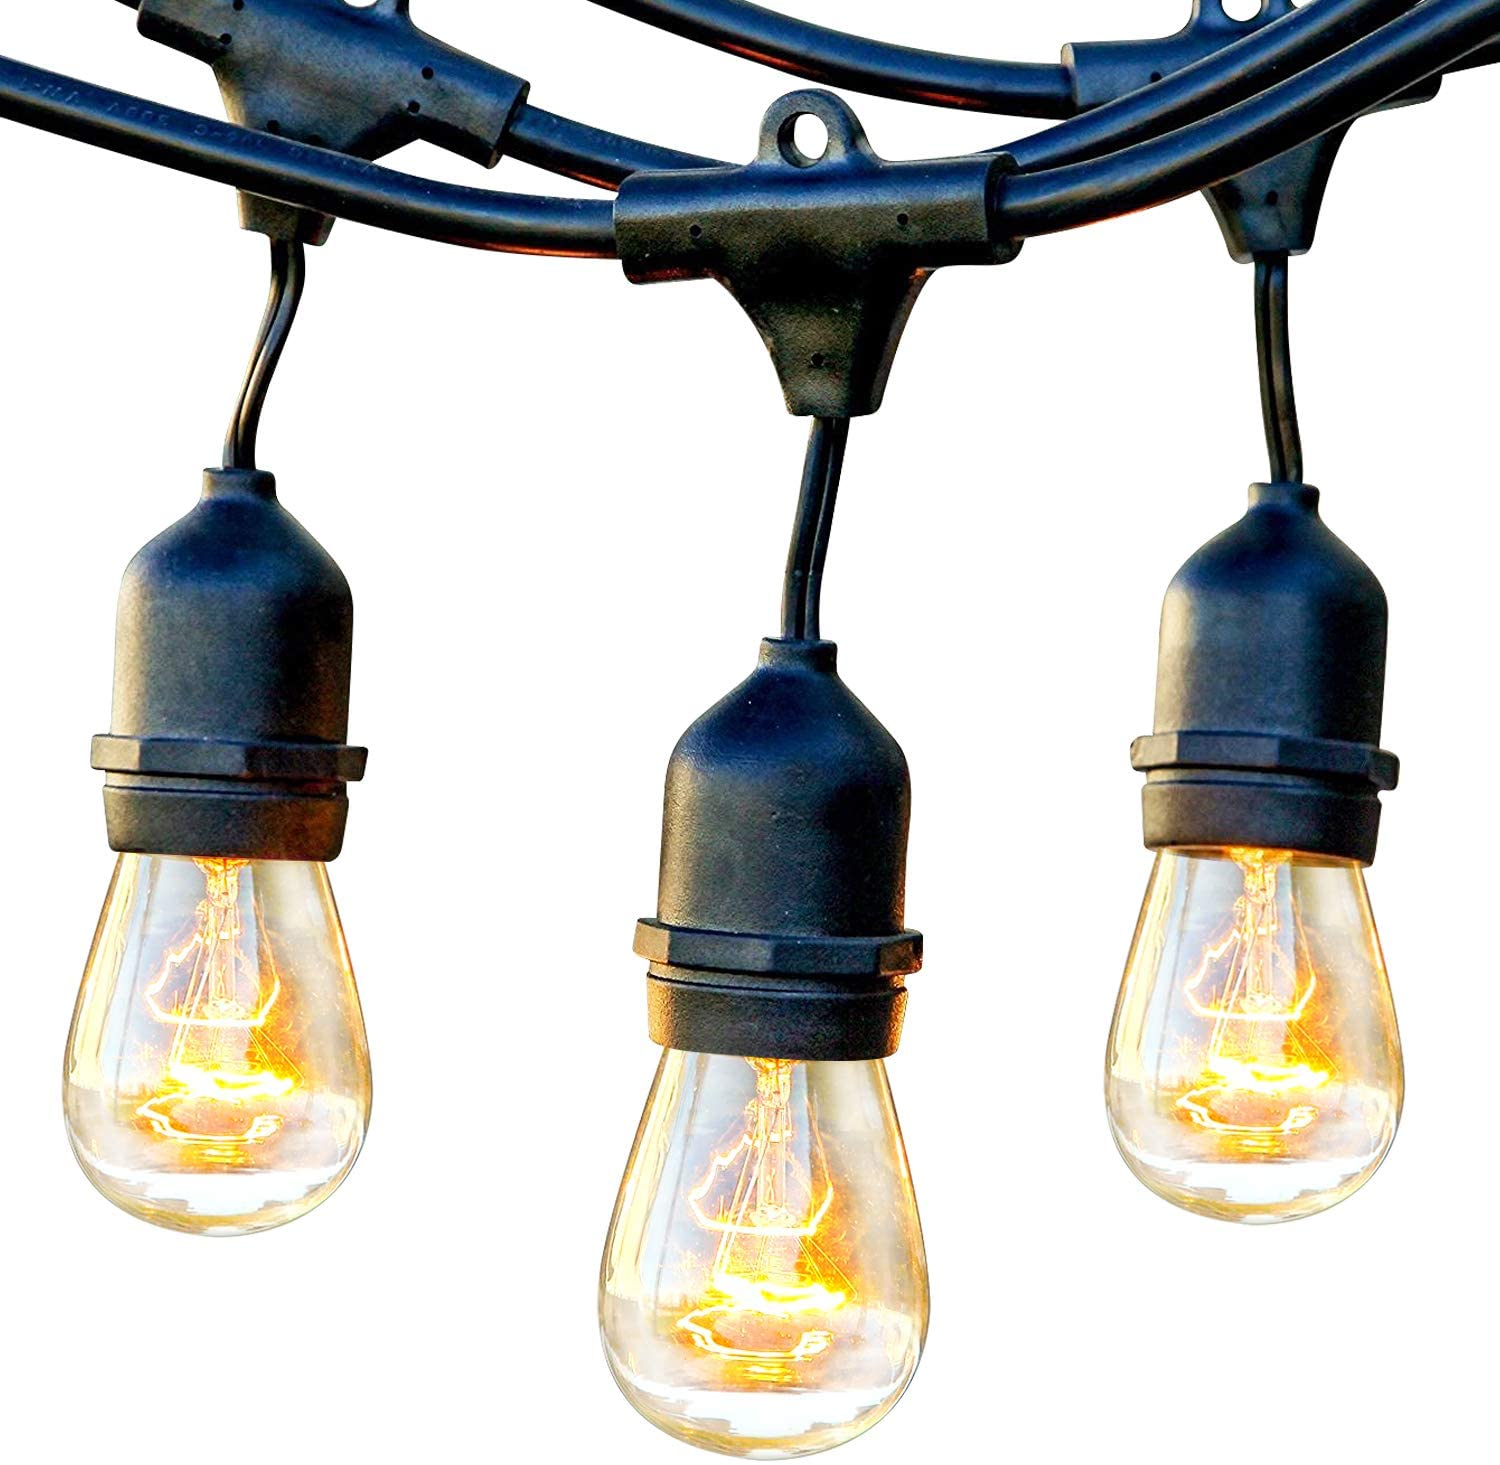 Brightech Ambience Pro Commercial Grade Outdoor String Lights